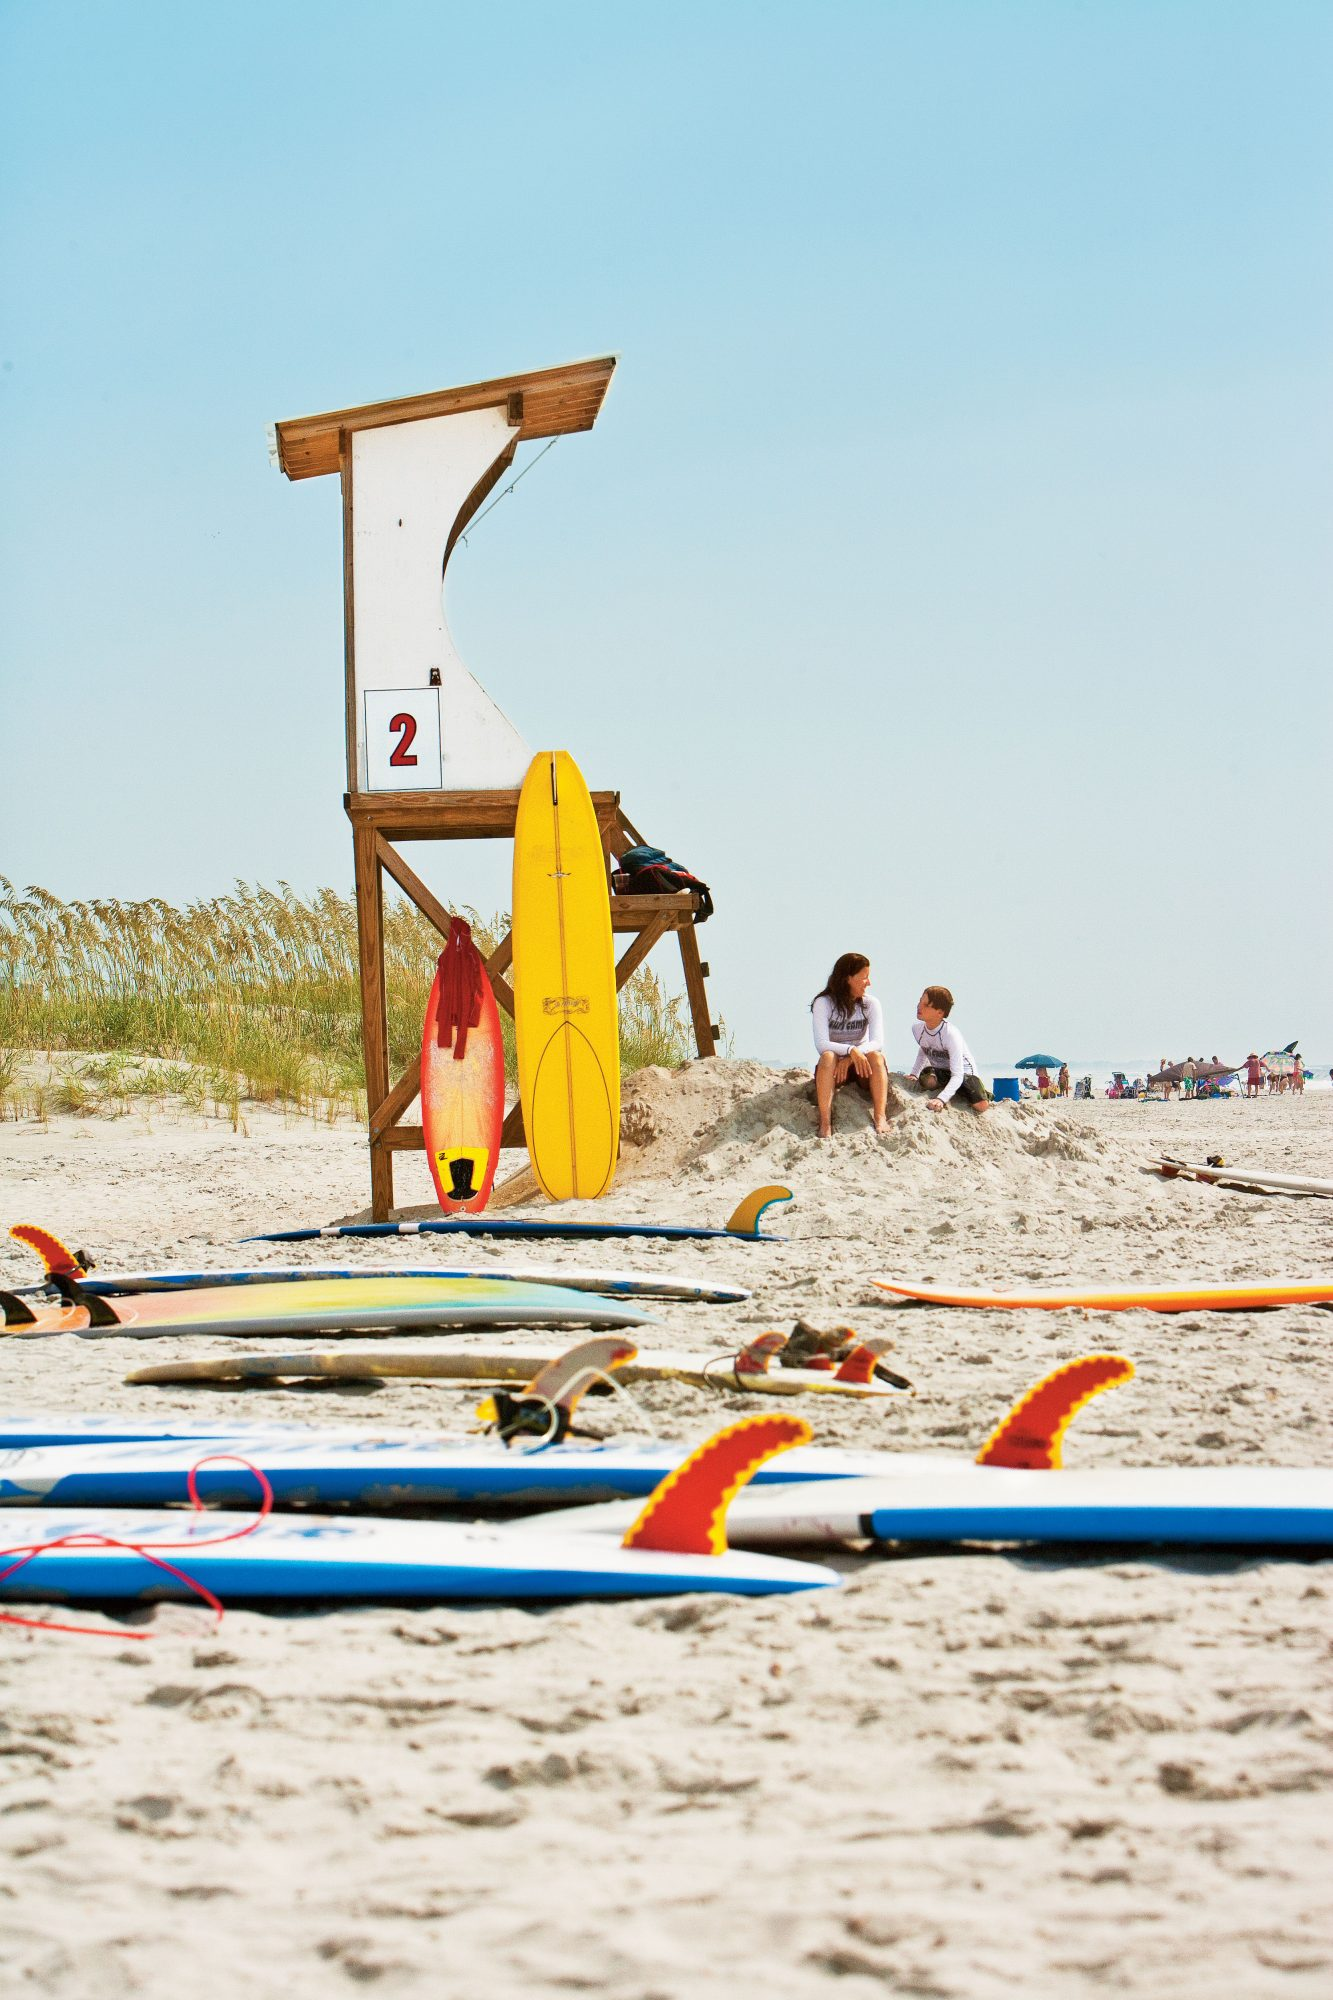 Honeymoon Destination: Wrightsville Beach, North Carolina